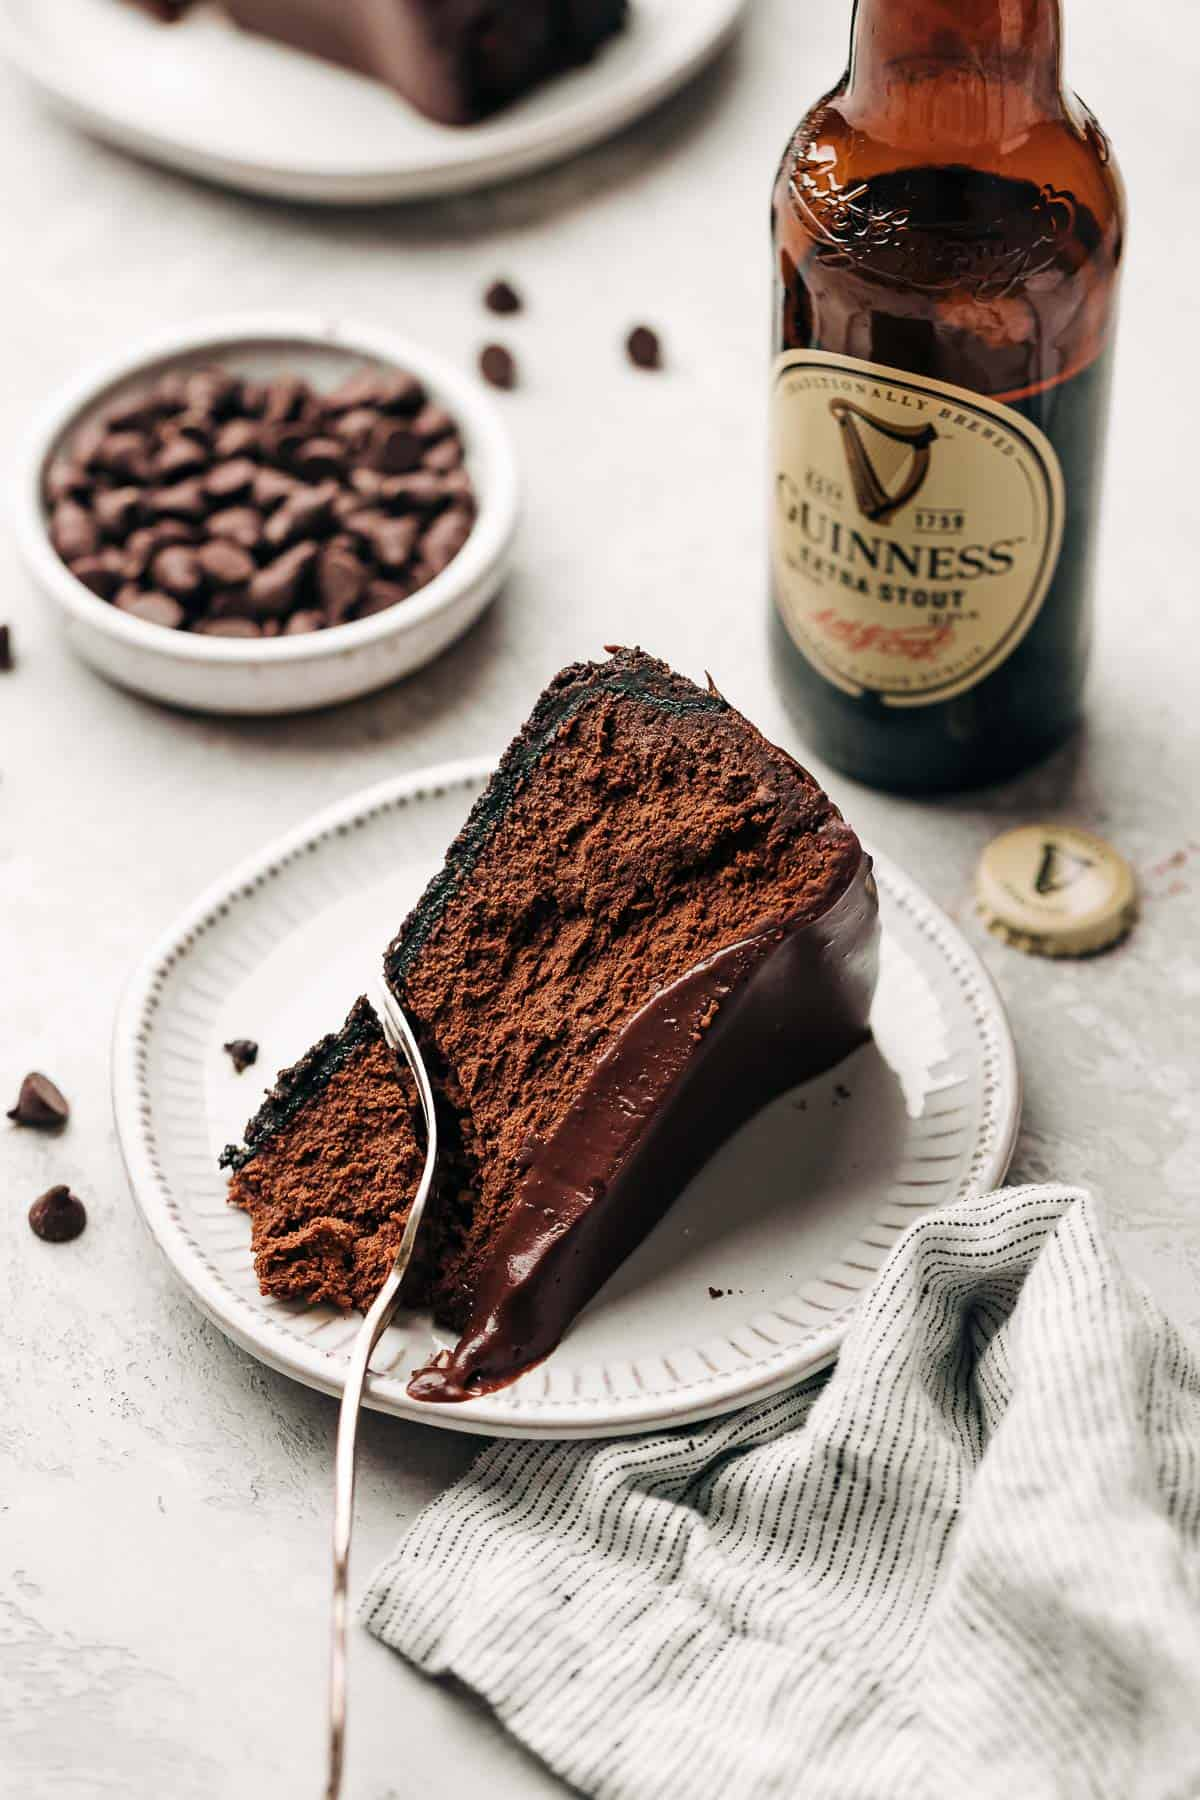 slice of chocolate cheesecake on a plate and a bowl of chocolate chips and bottle of stout.